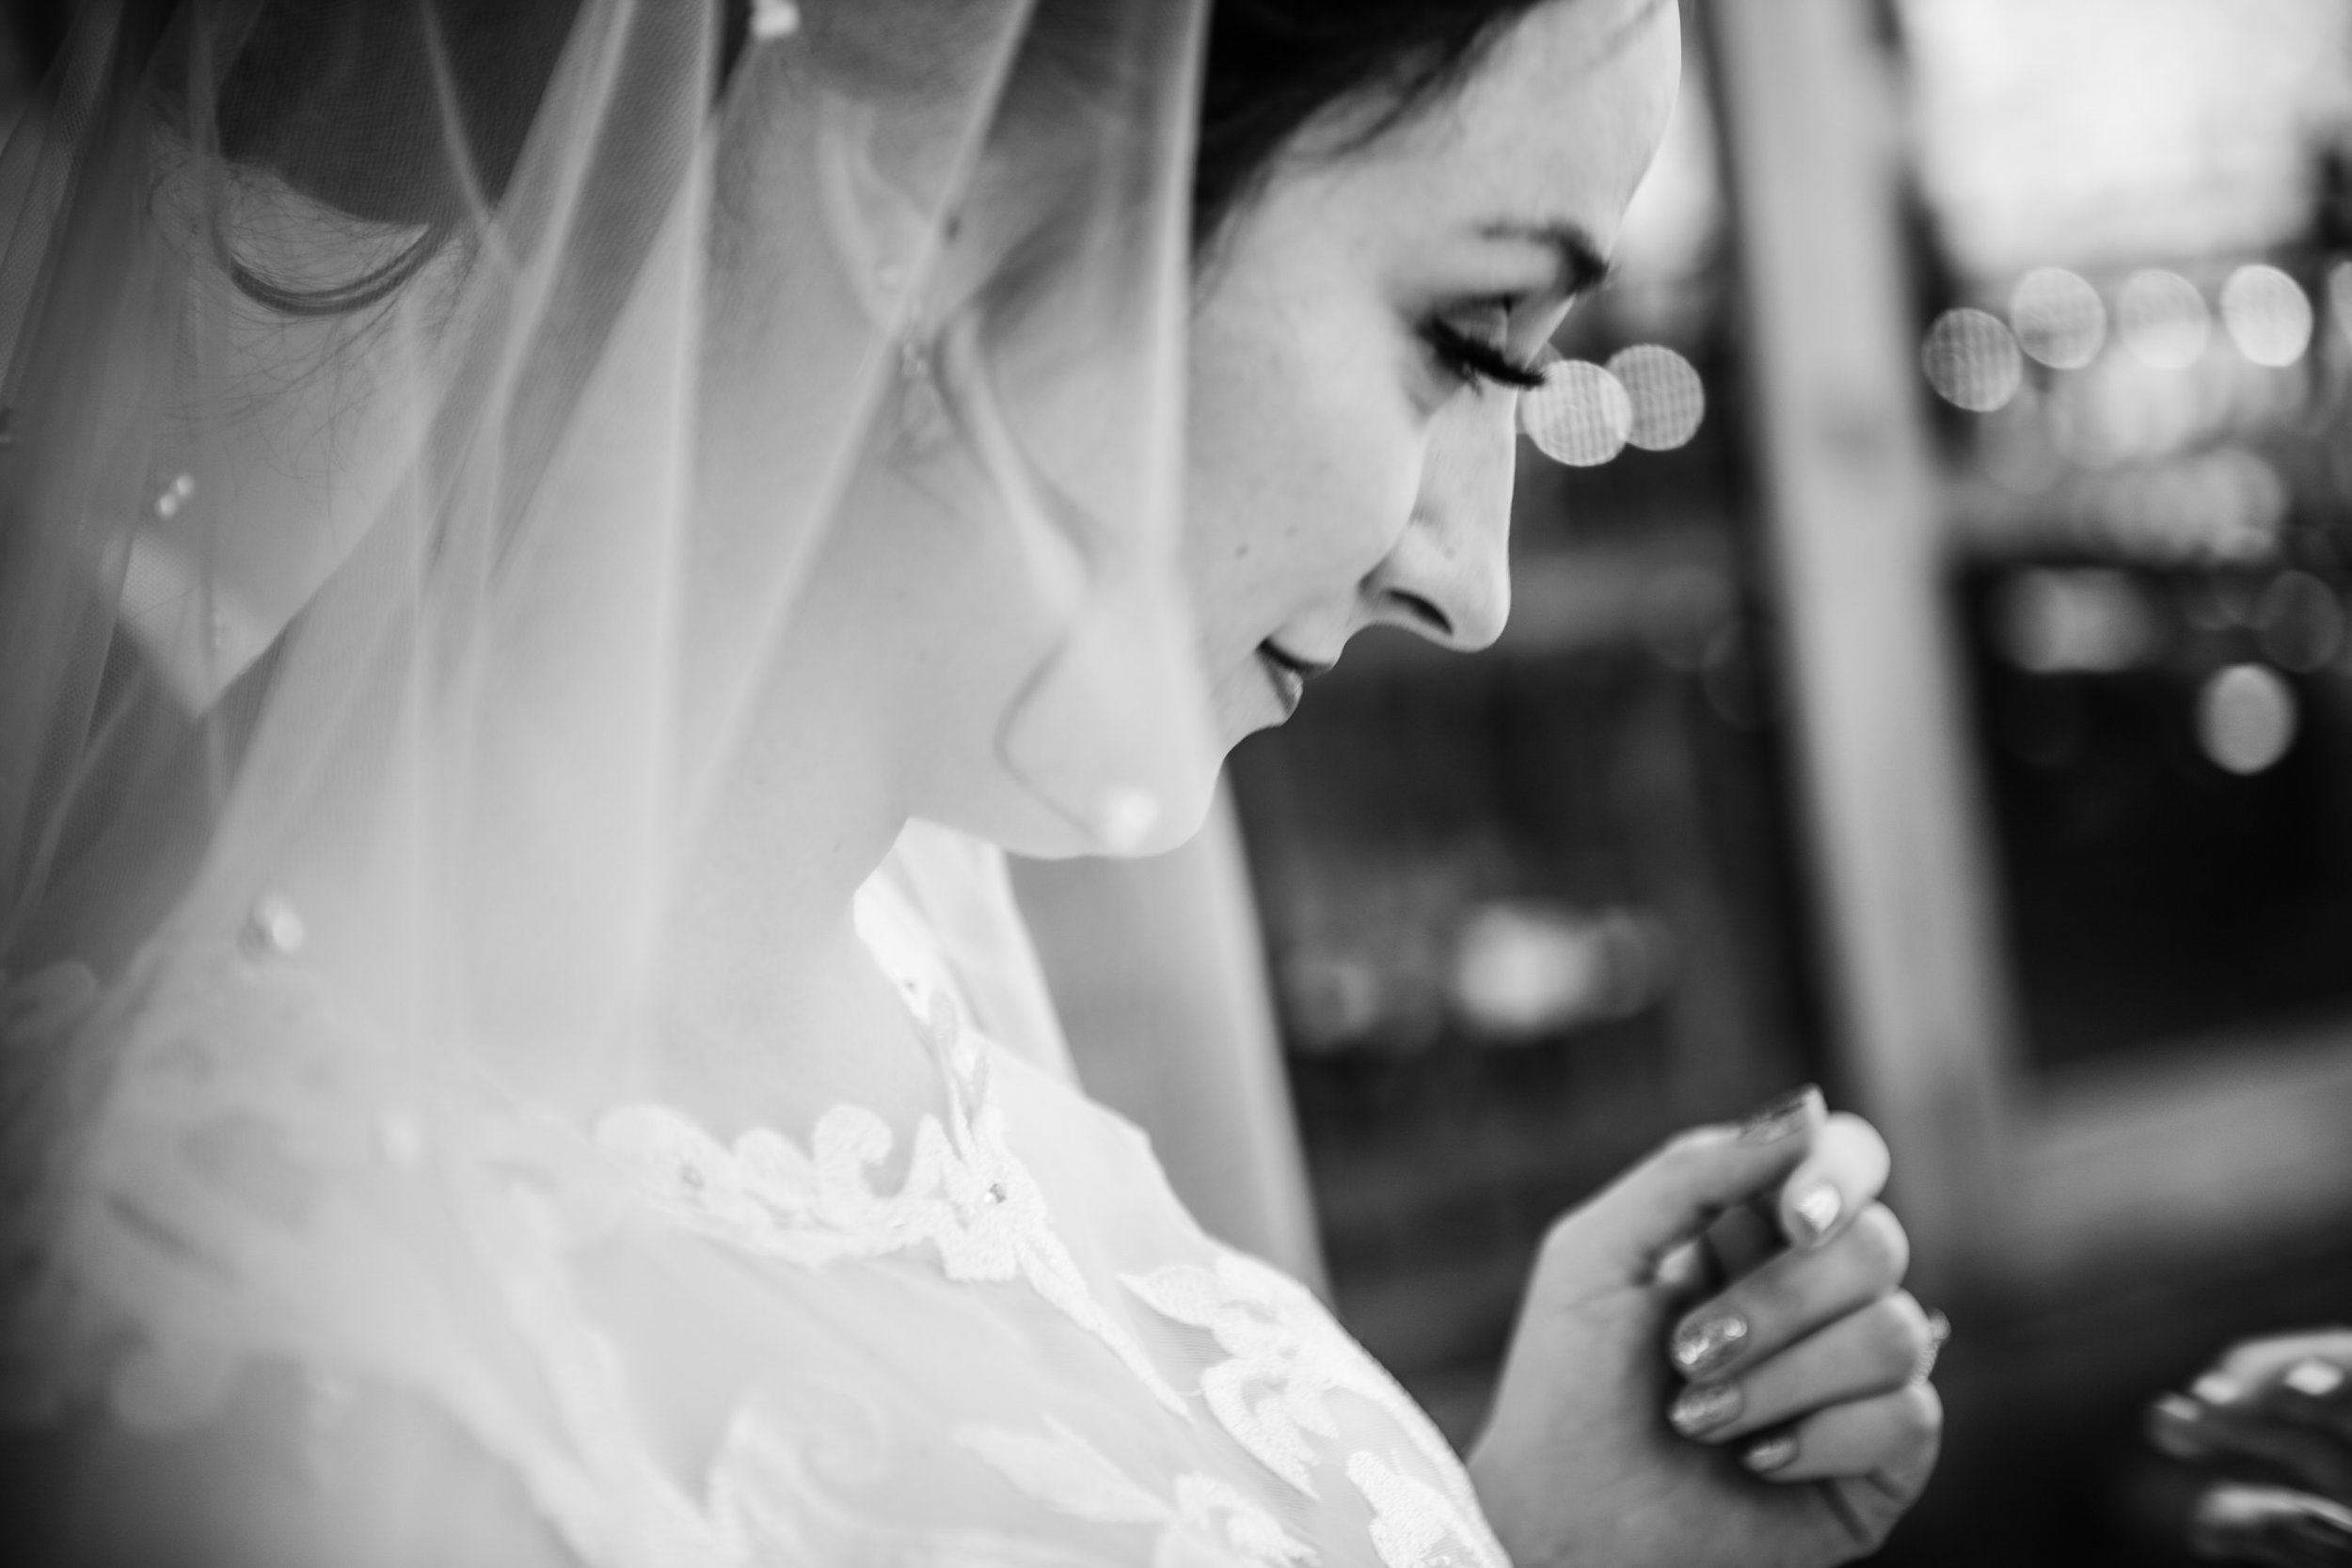 ThorpewoodWedding-Eileen&Chris-GettingReady-4216.jpg